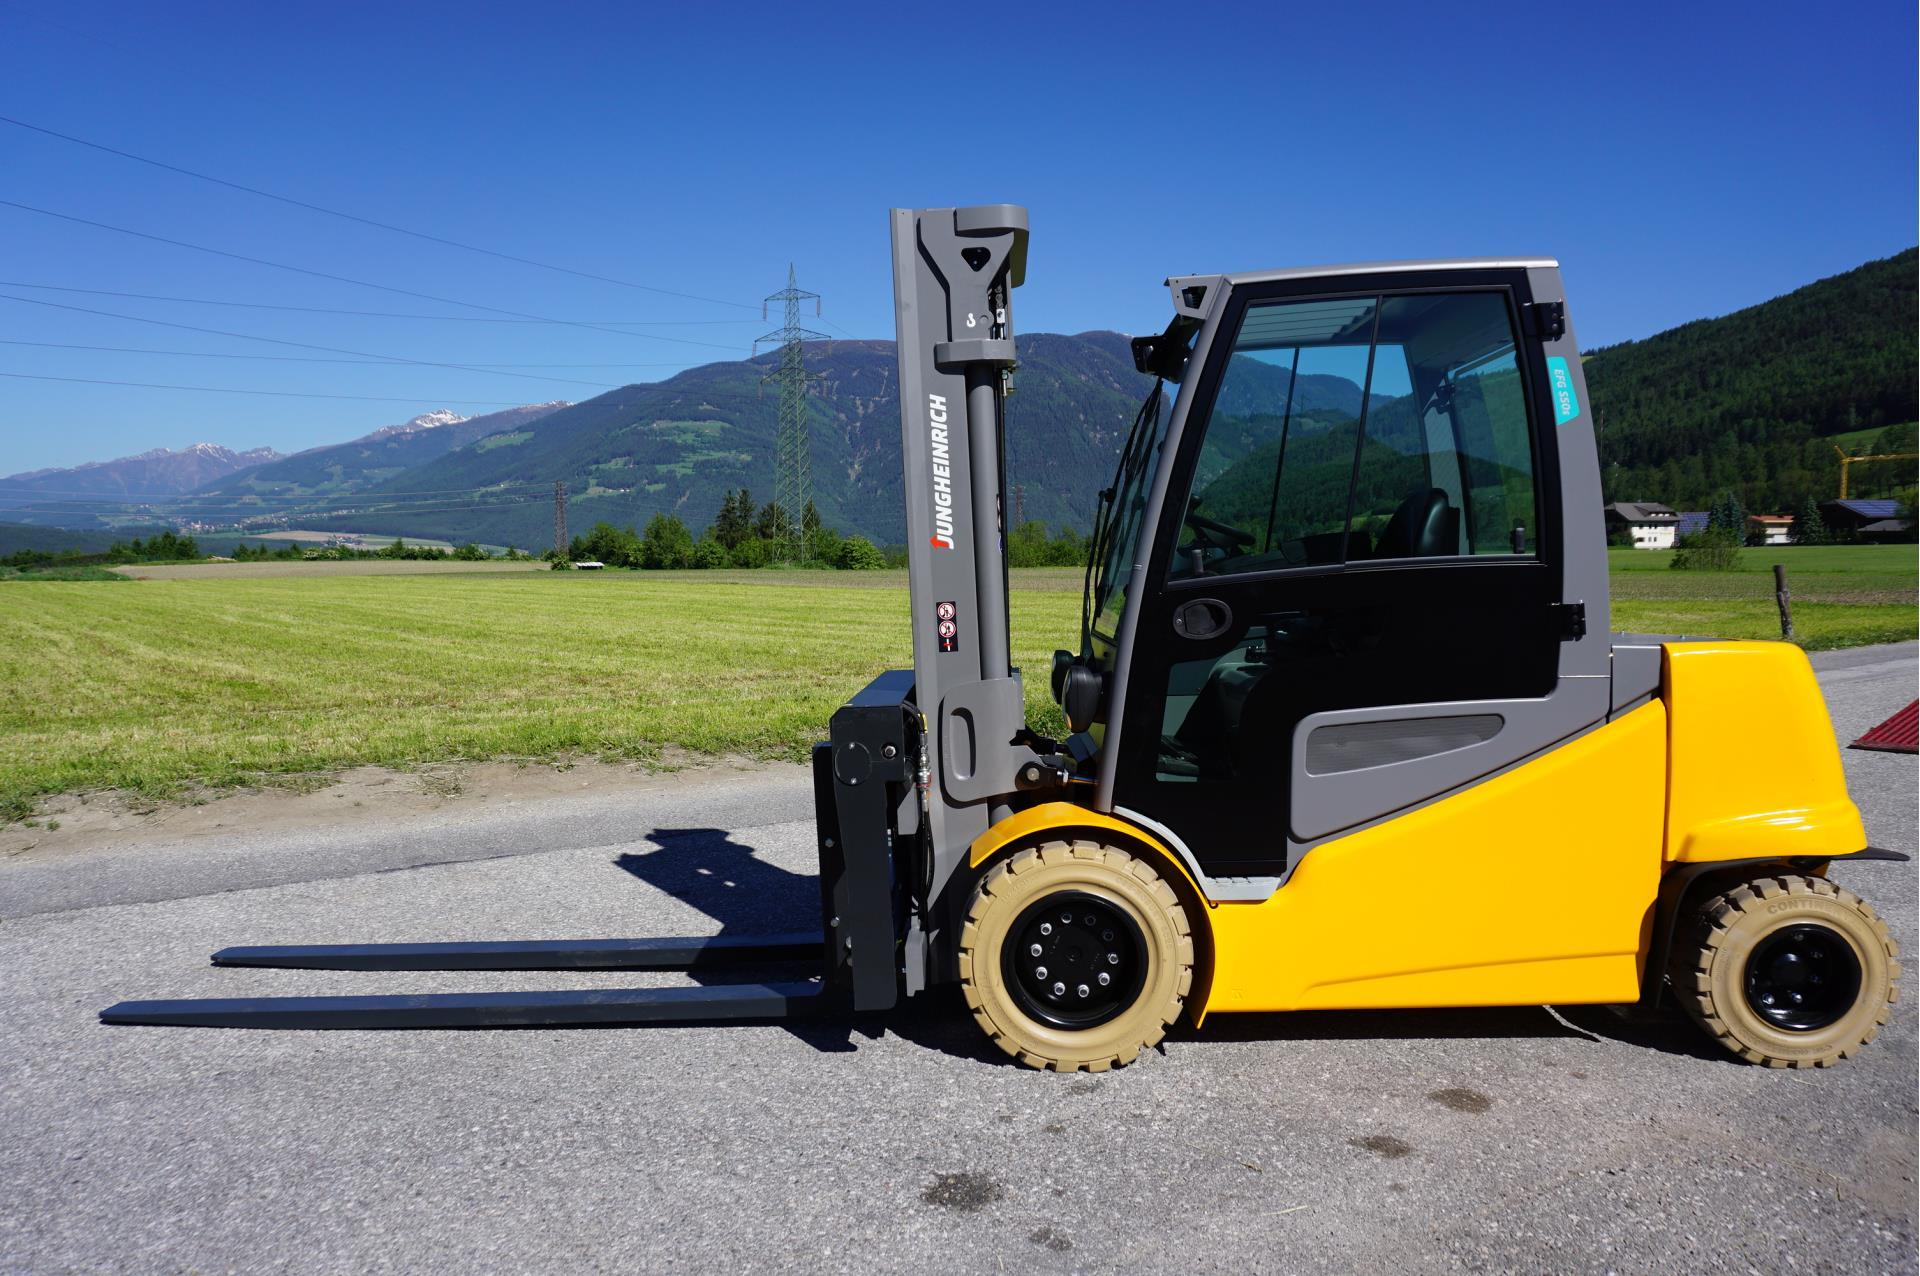 Forklift Rental - You will find a large selection of electric and diesel forklifts